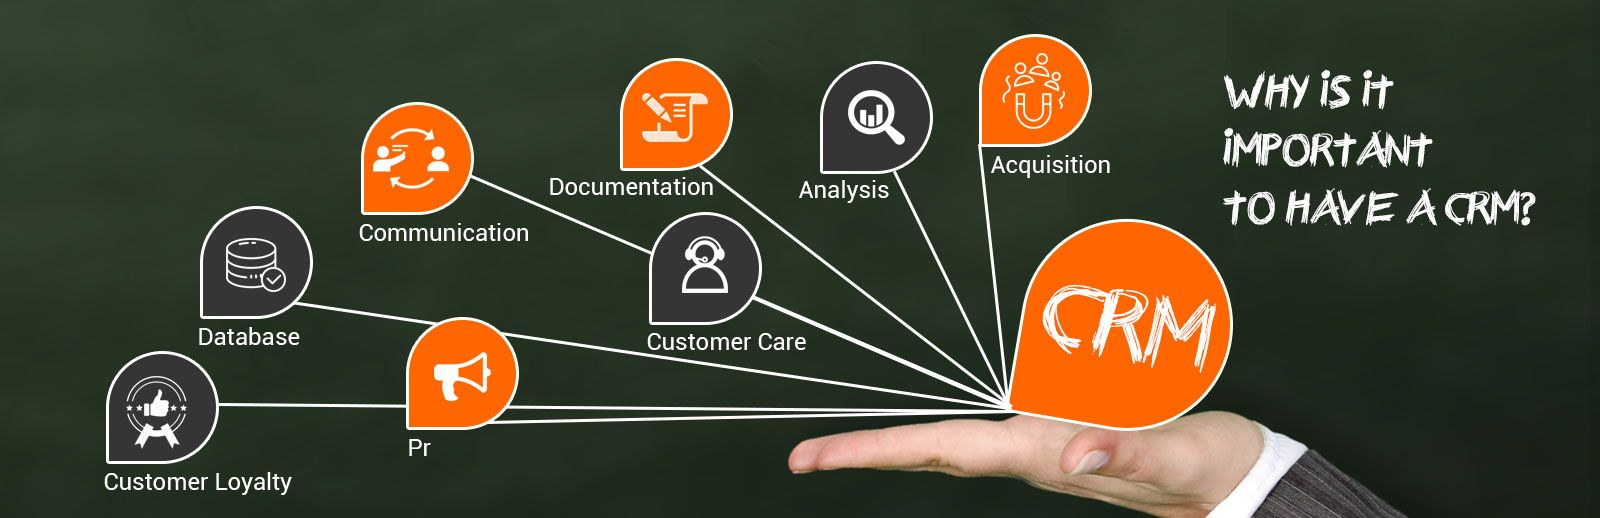 Why it is important to have a CRM? Customer